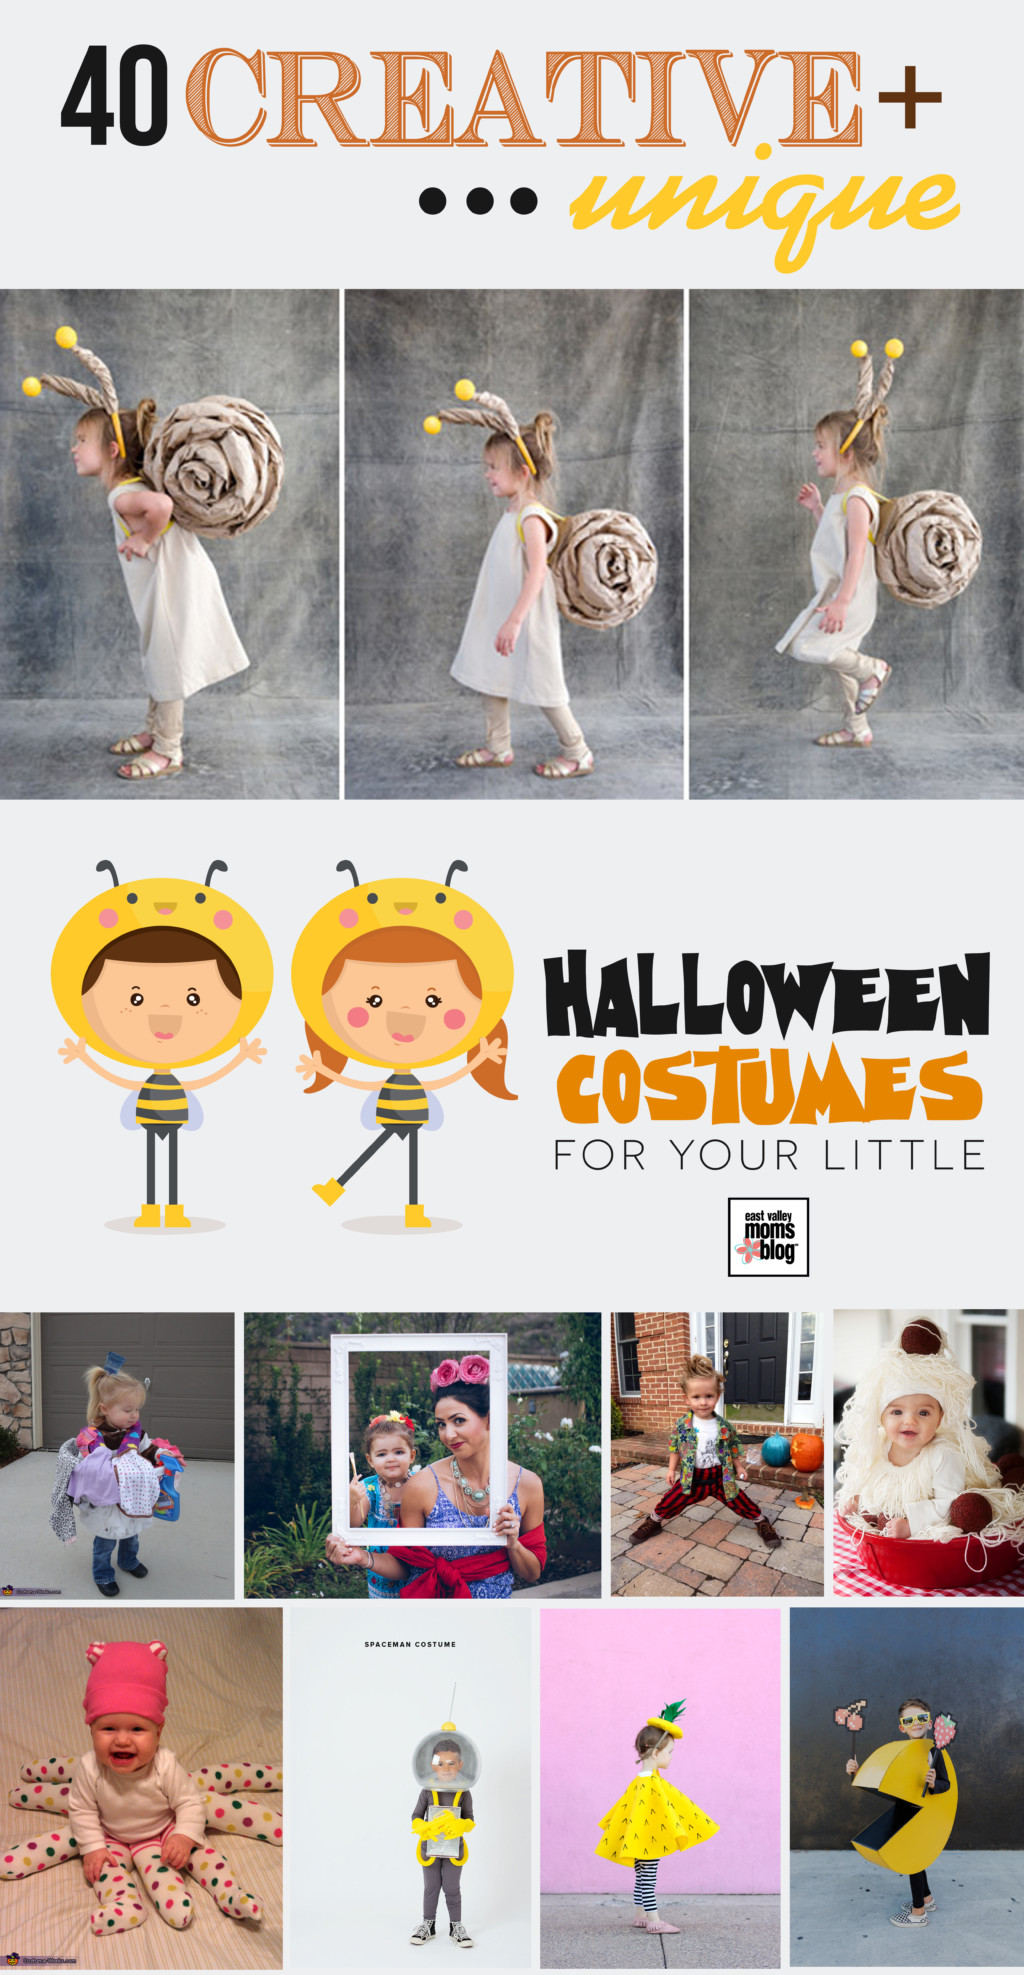 40 Creative and Unique Halloween Costumes for Littles via East Valley Moms Blog